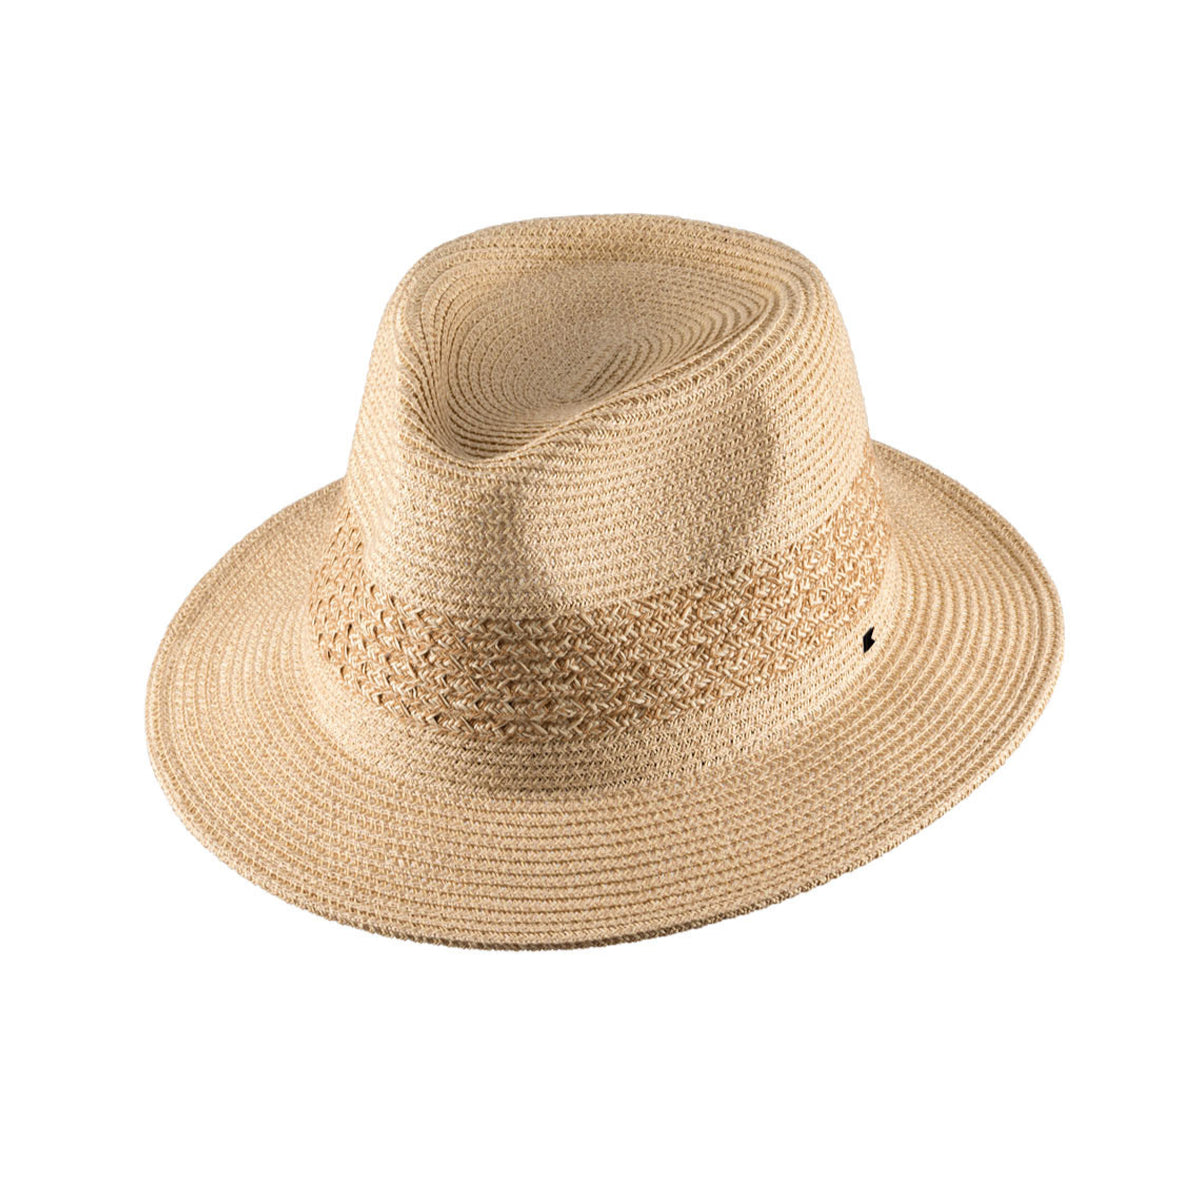 Kooringal Unisex Breeze Fedora Hat - Natural